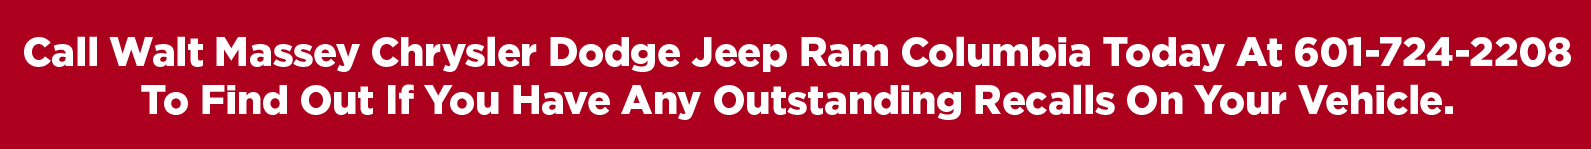 Call Walt Massey Chrysler Dodge Jeep Ram Columbia today at 601-724-2208 to find out if you have any outstanding recalls on your vehicle